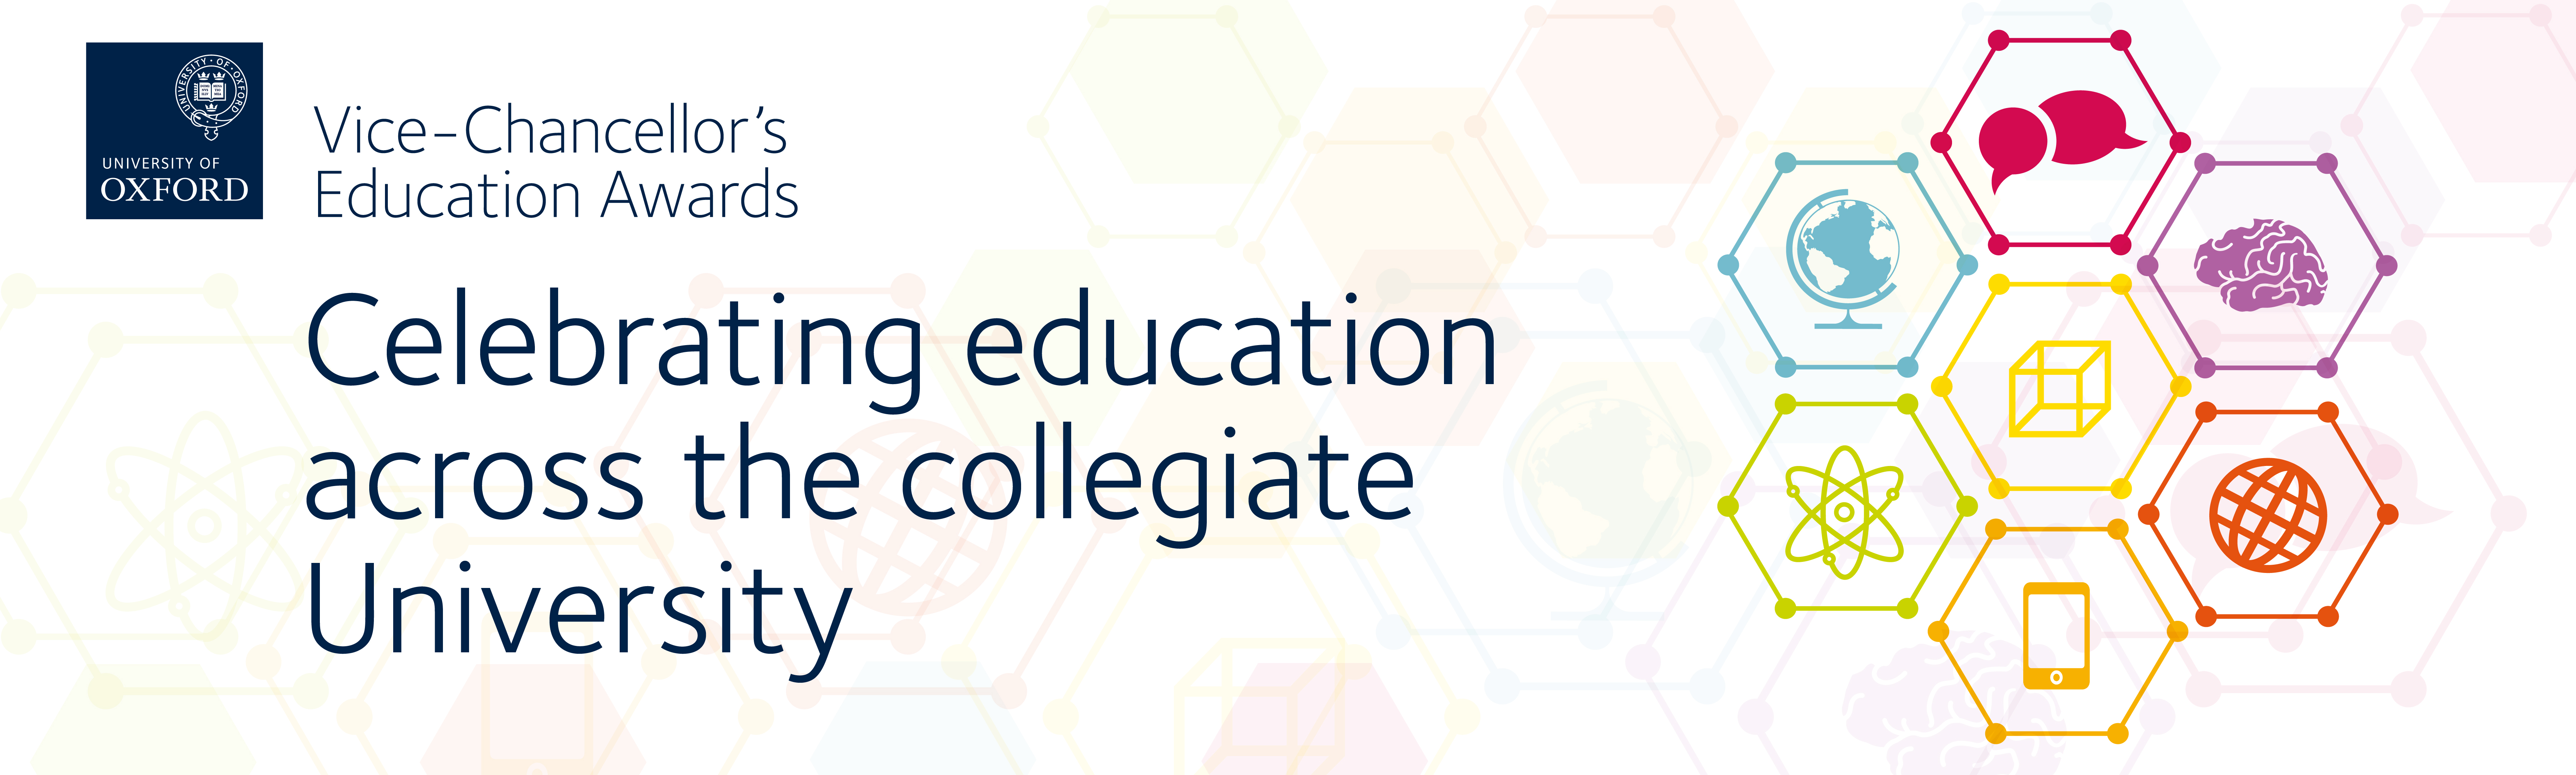 Vice-Chancellors Education Awards banner with slogan 'Celebrating education across the collegiate University'